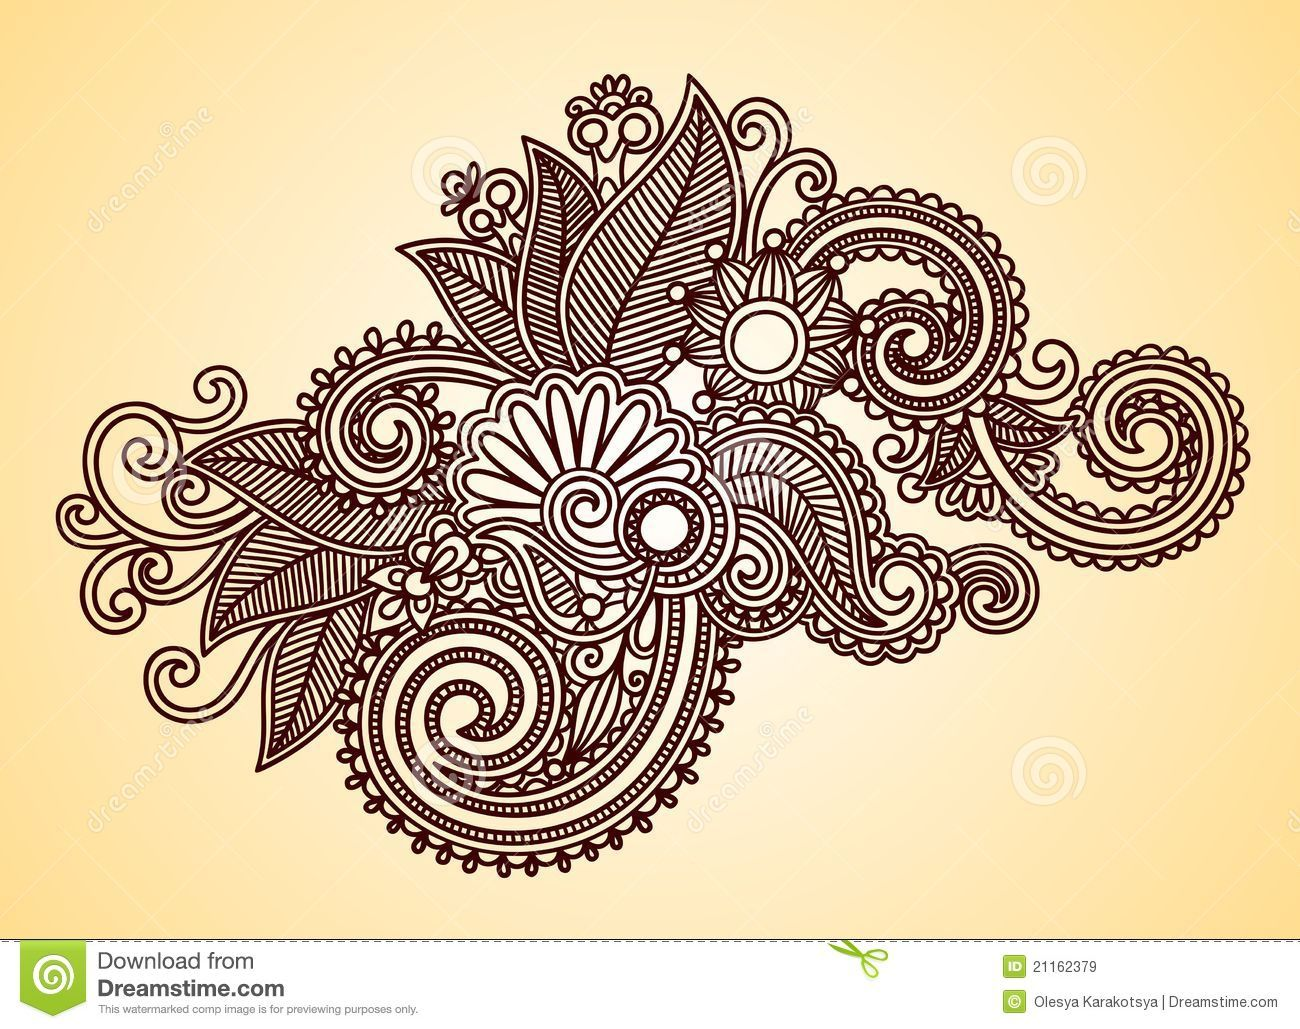 images for gt henna design drawing henna amp mehndi designs